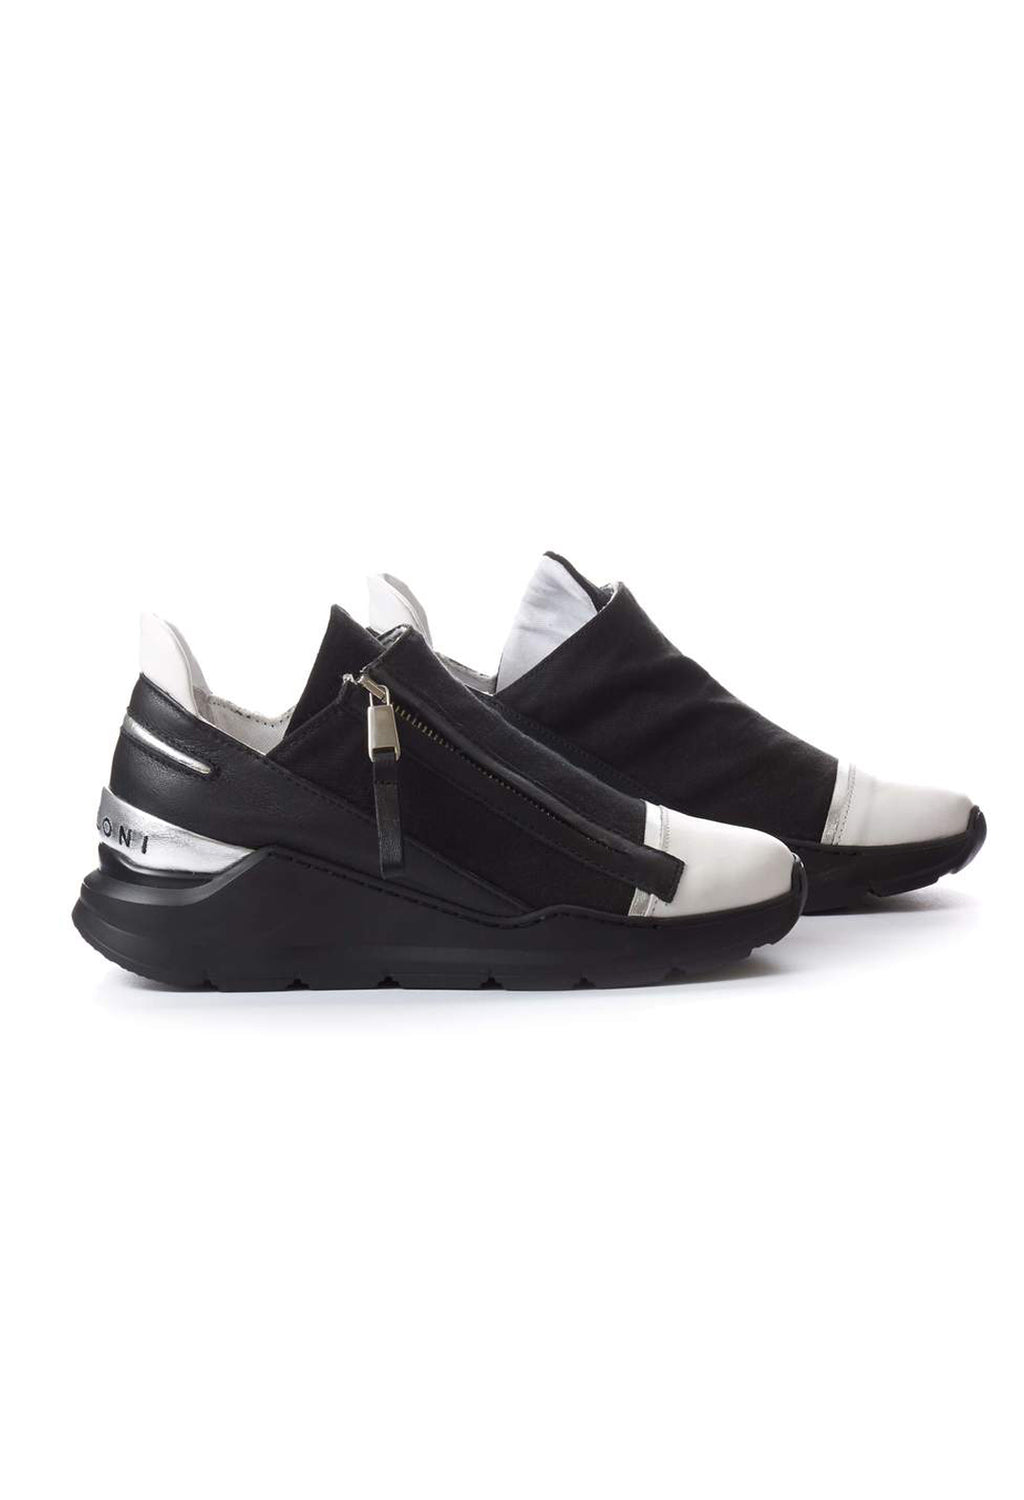 Chunky Slip On Trainers with Metallic Detail in Pamplona Bianco / Pamplona Nero / Nalux Argento